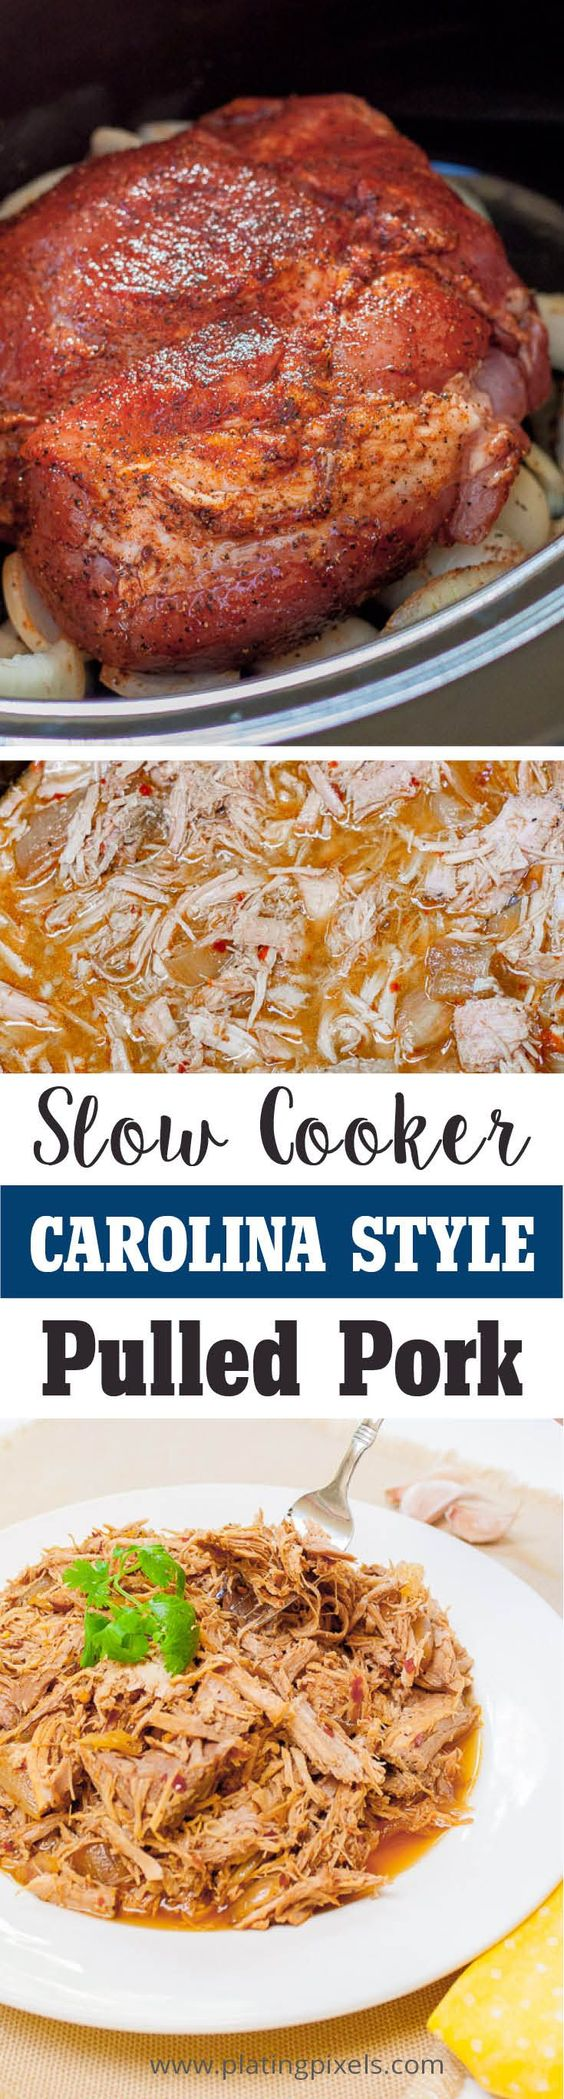 Carolina Style Slow Cooker Pulled Pork | Recipe | Pulled Pork, Pulled ...